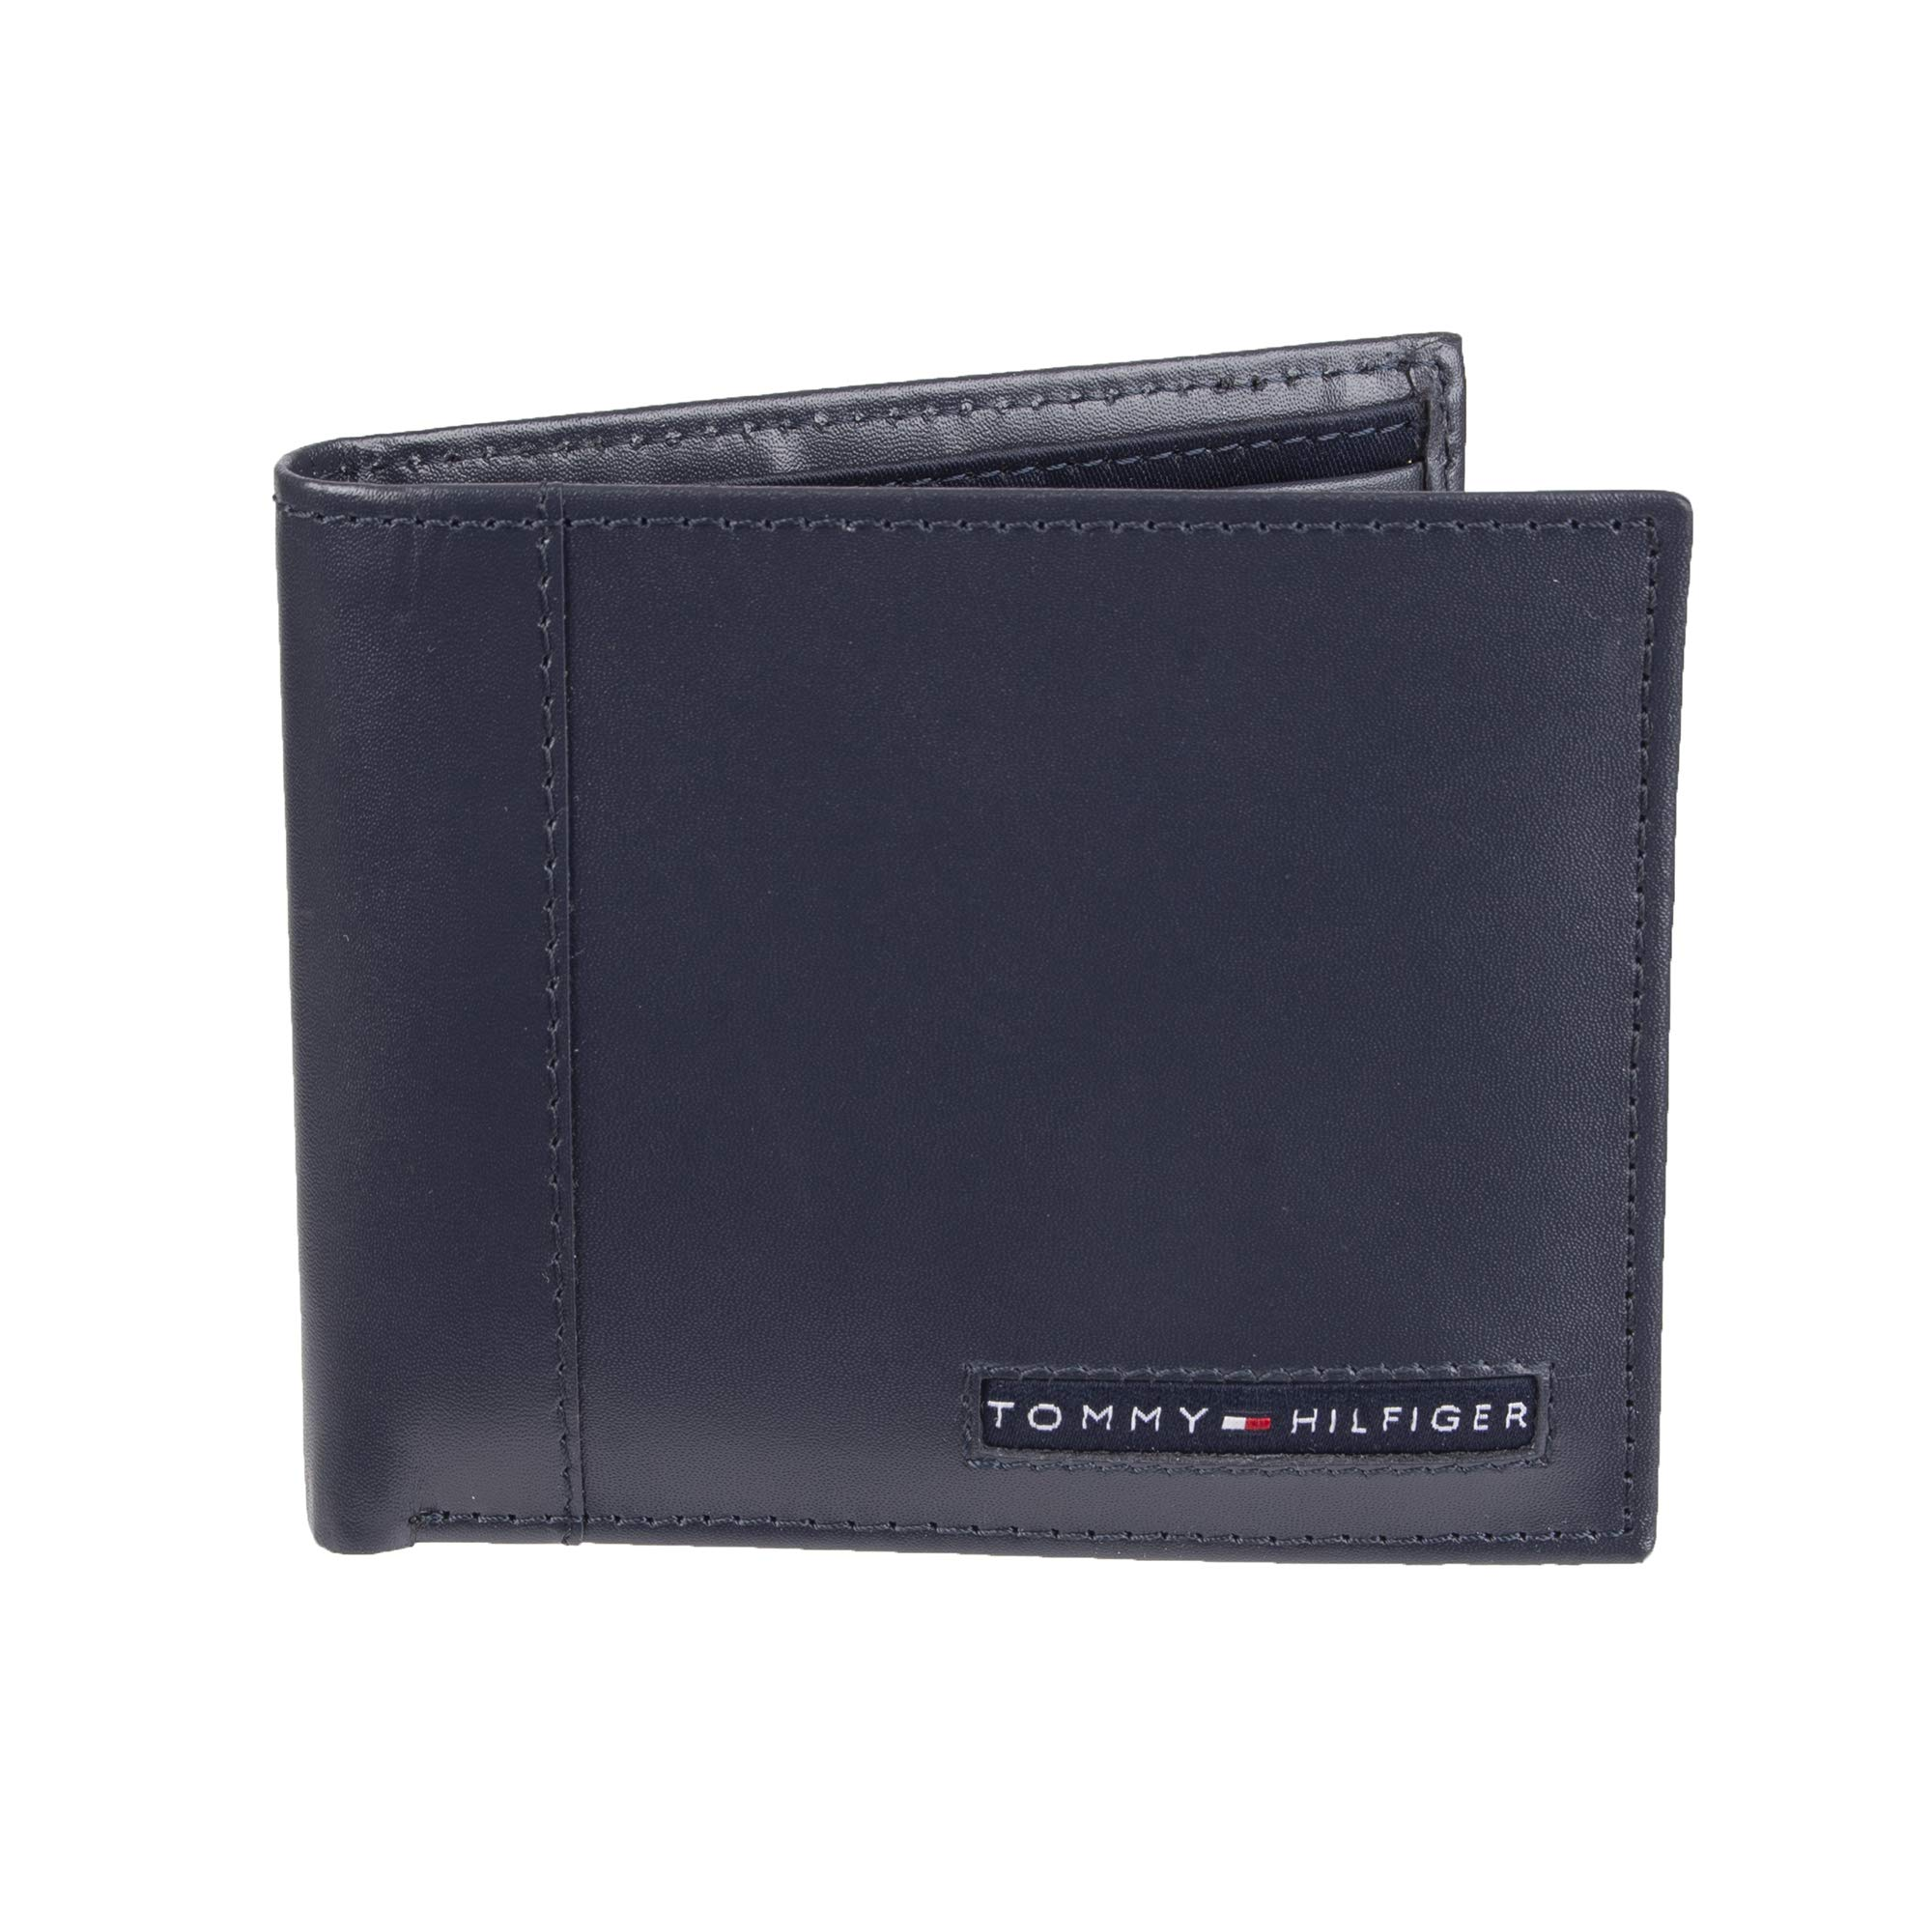 Tommy Hilfiger Men's Leather Wallet - RFID Blocking Slim Thin Bifold with Removable Card Holder and Gift Box, Navy Casual